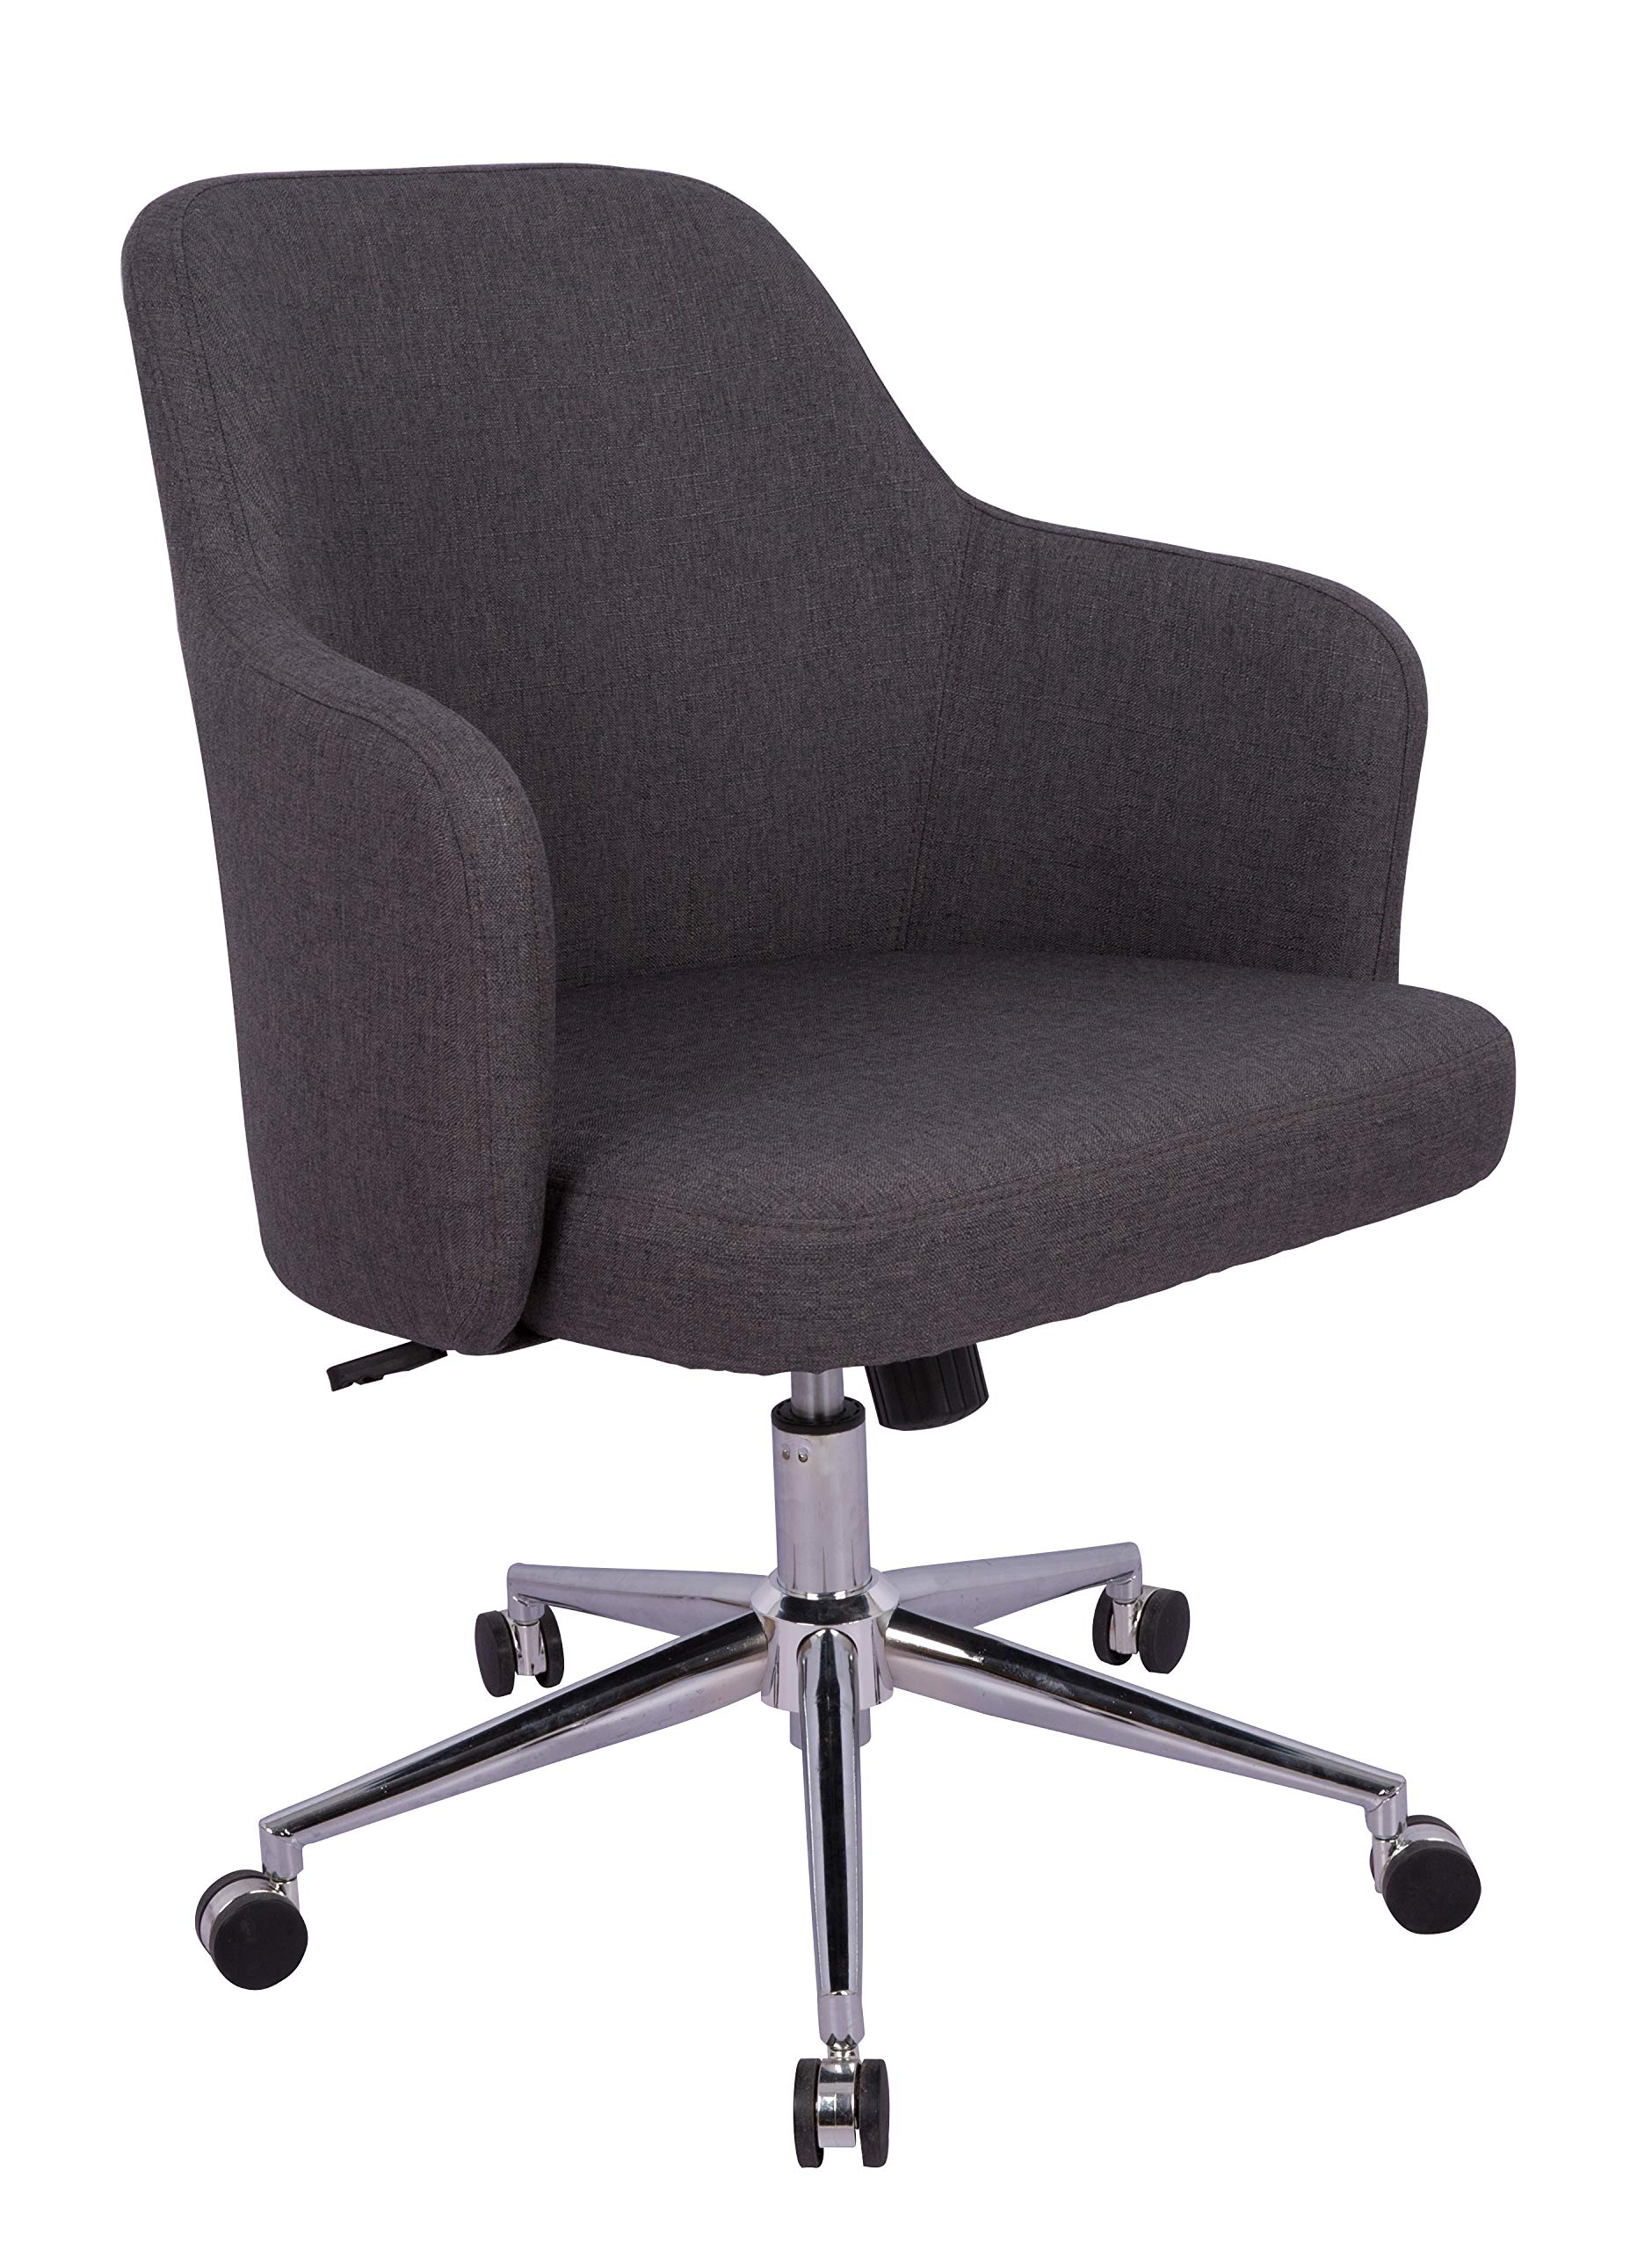 AmazonBasics Classic, Adjustable, Swivel Office Desk Chair with Casters and Twill Fabric, Charcoal